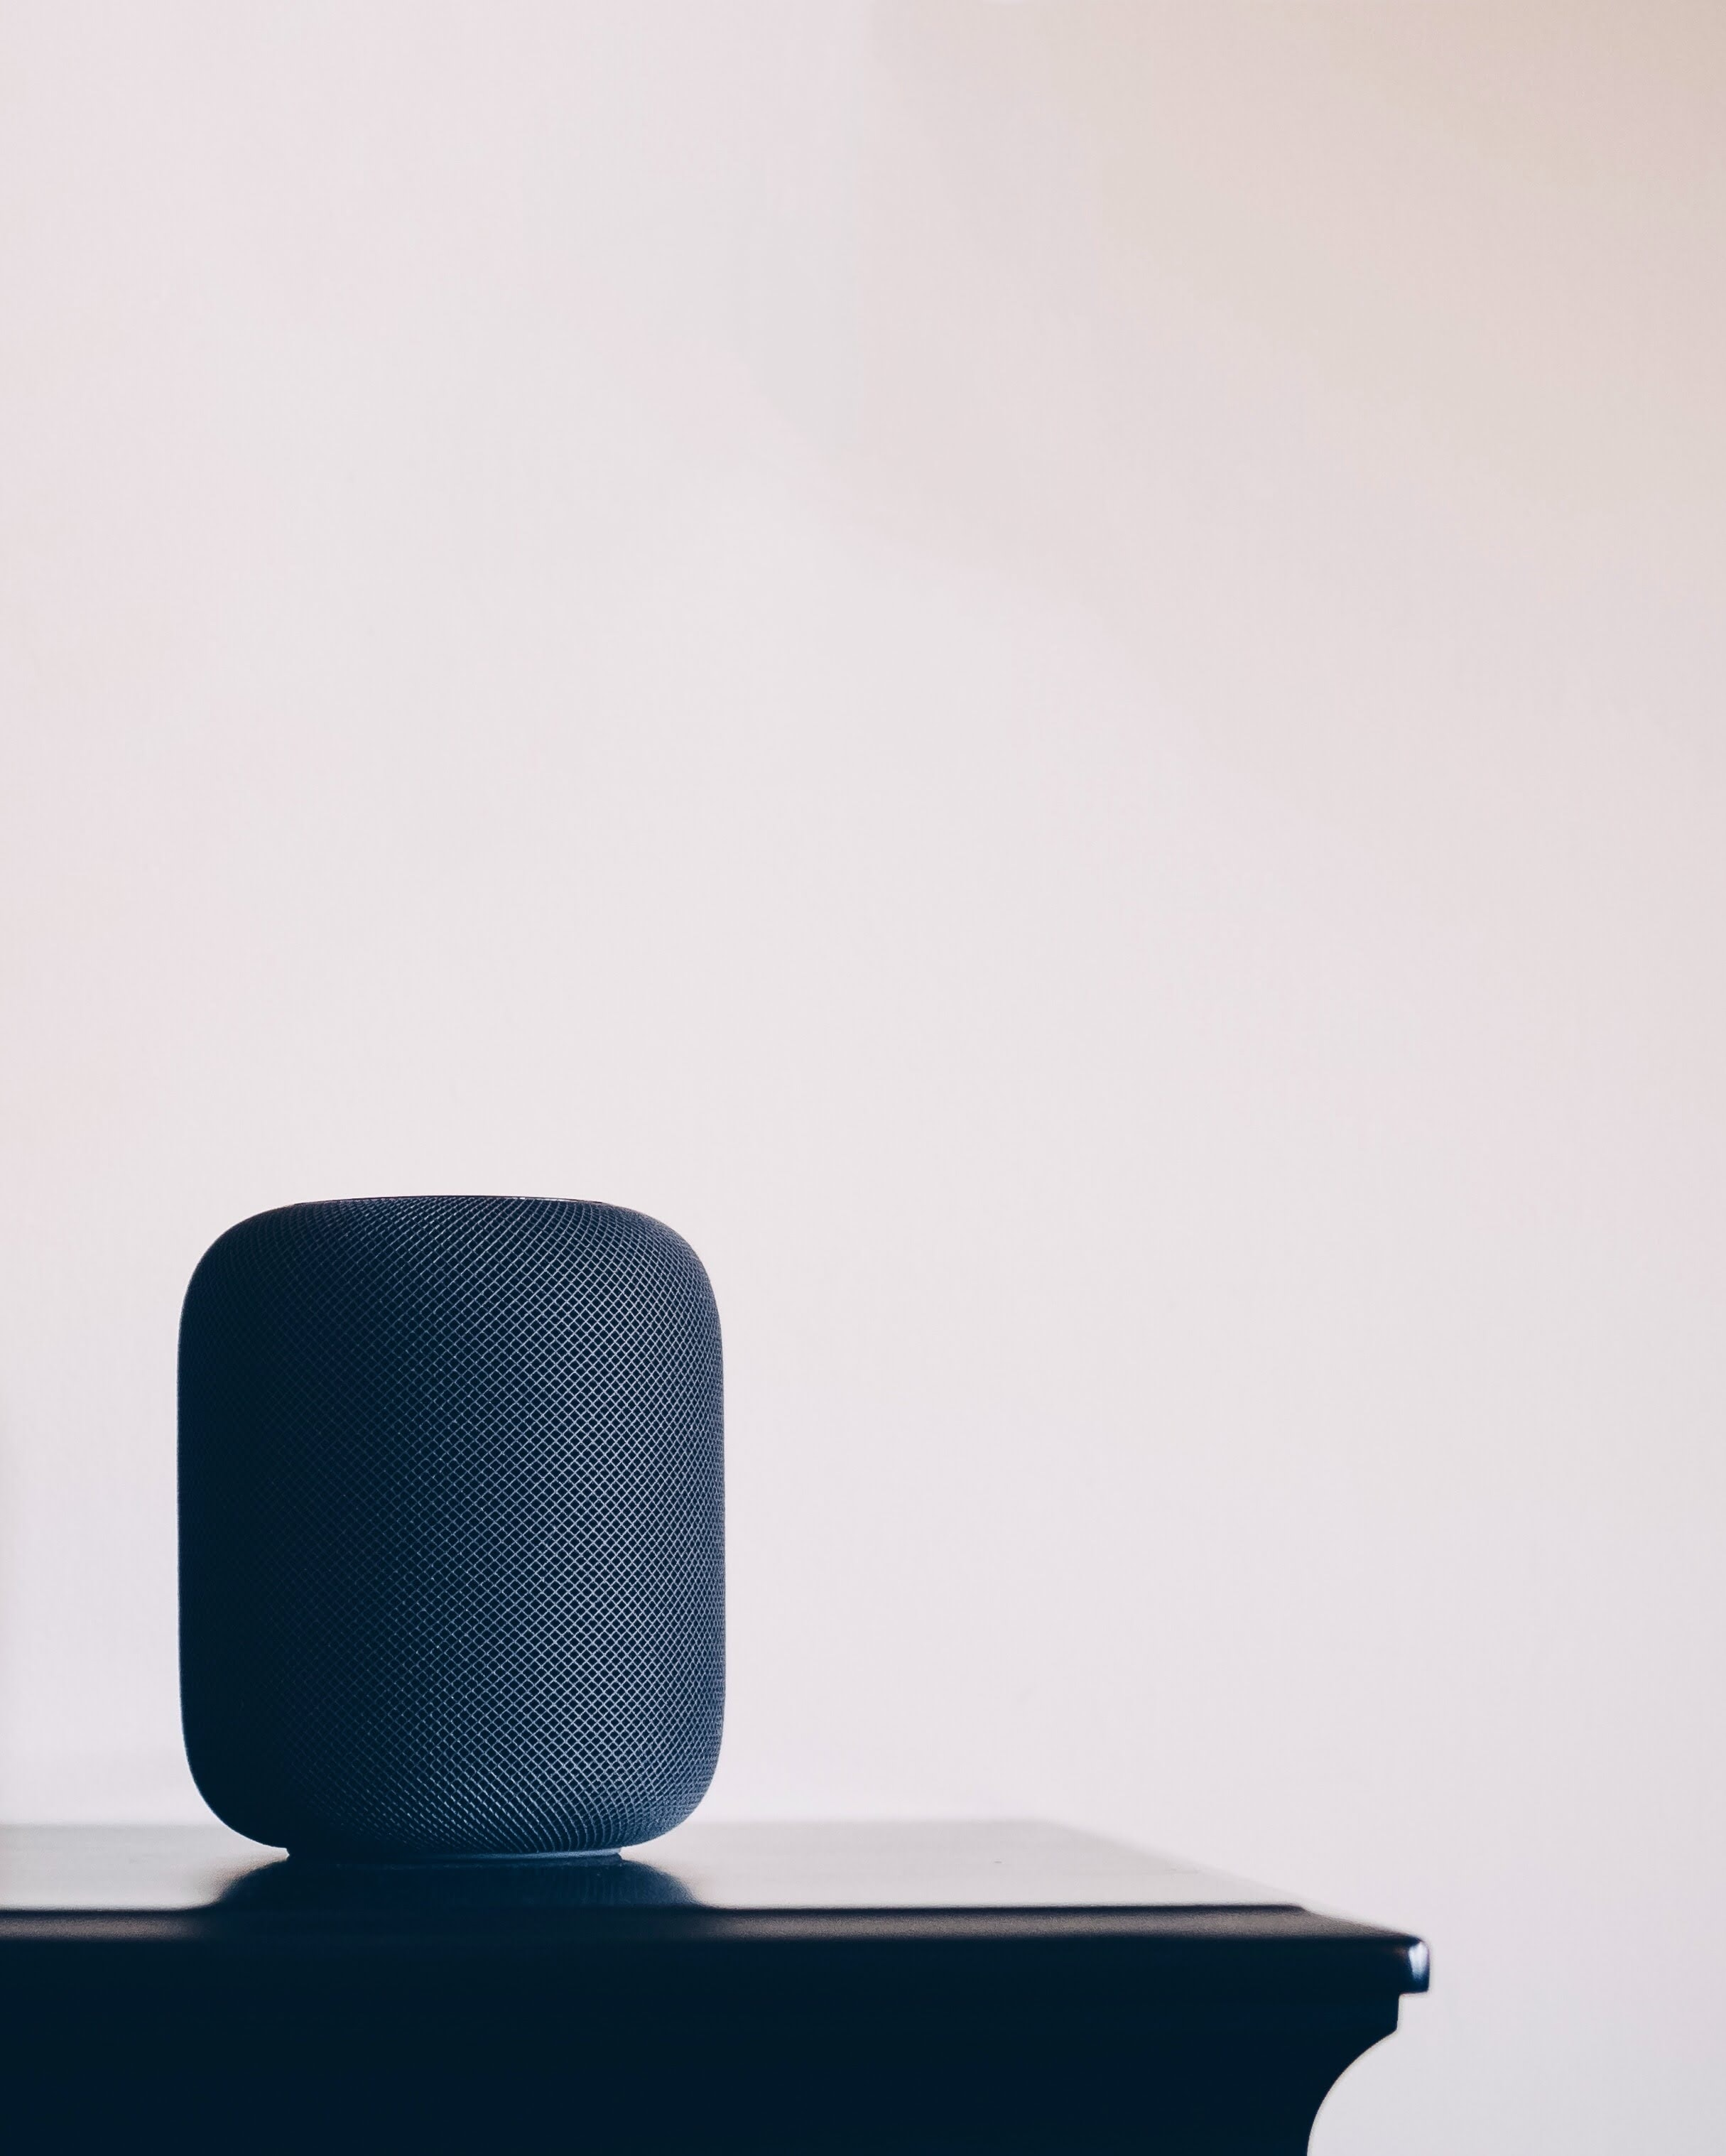 black Apple HomePod speaker on table